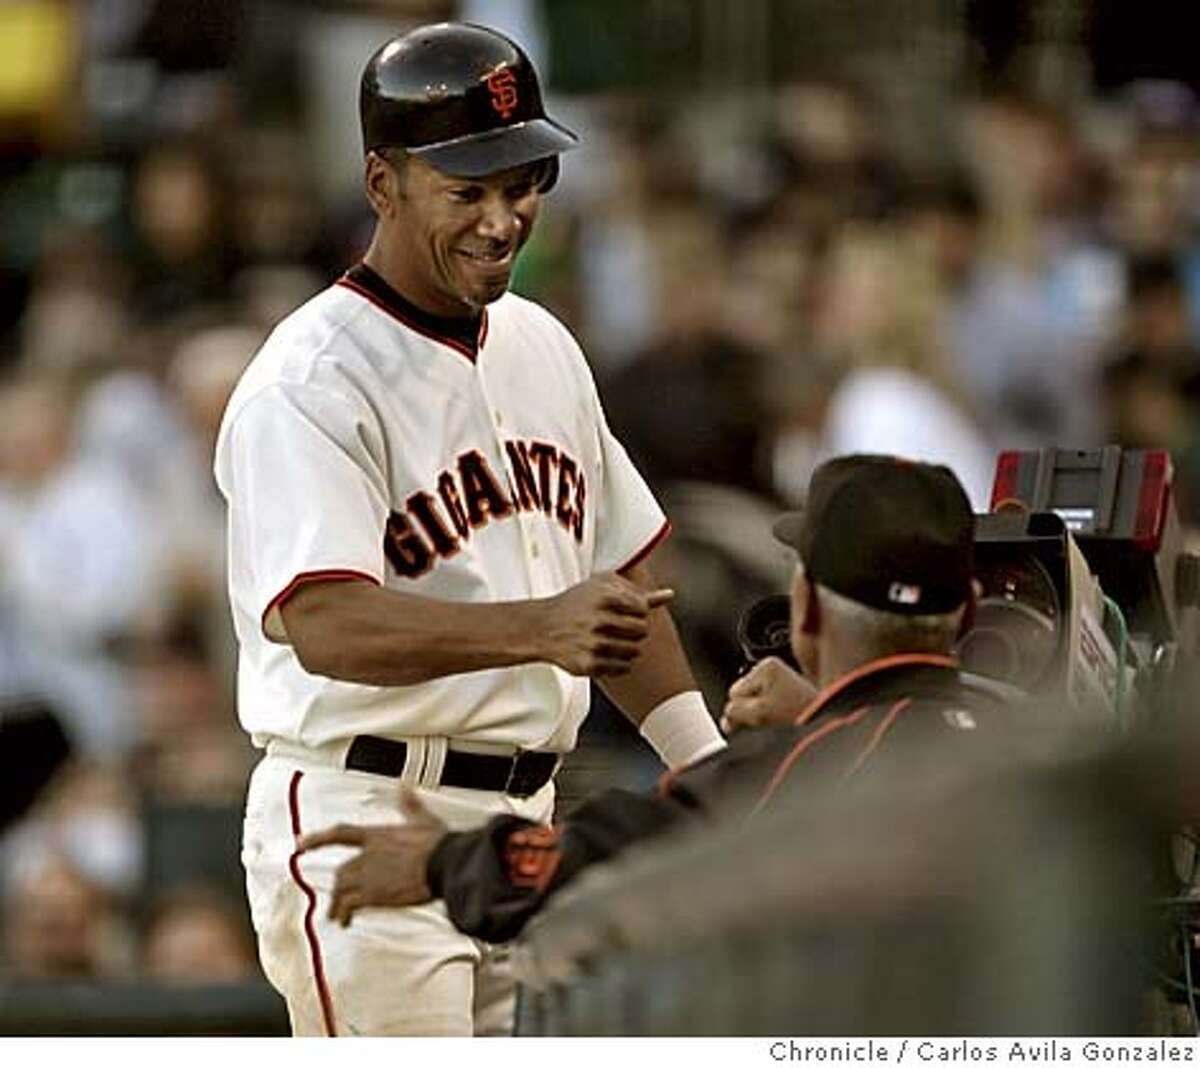 Gigantes' right fielder, Moises Alou, smiles as he is high-fived by his pap�, manager, Felipe Alou after Moises hit a two-run homerun in the bottom of the sixth inning. The San Francisco Giants played the Oakland Athletics at SBC Park in San Francisco, Ca., on Sunday, May 22, 2005. The Giants defeated the Athletics 3-1. Photo by Carlos Avila Gonzalez / The San Francisco Chronicle Photo taken on 5/22/05, in San Francisco,CA.